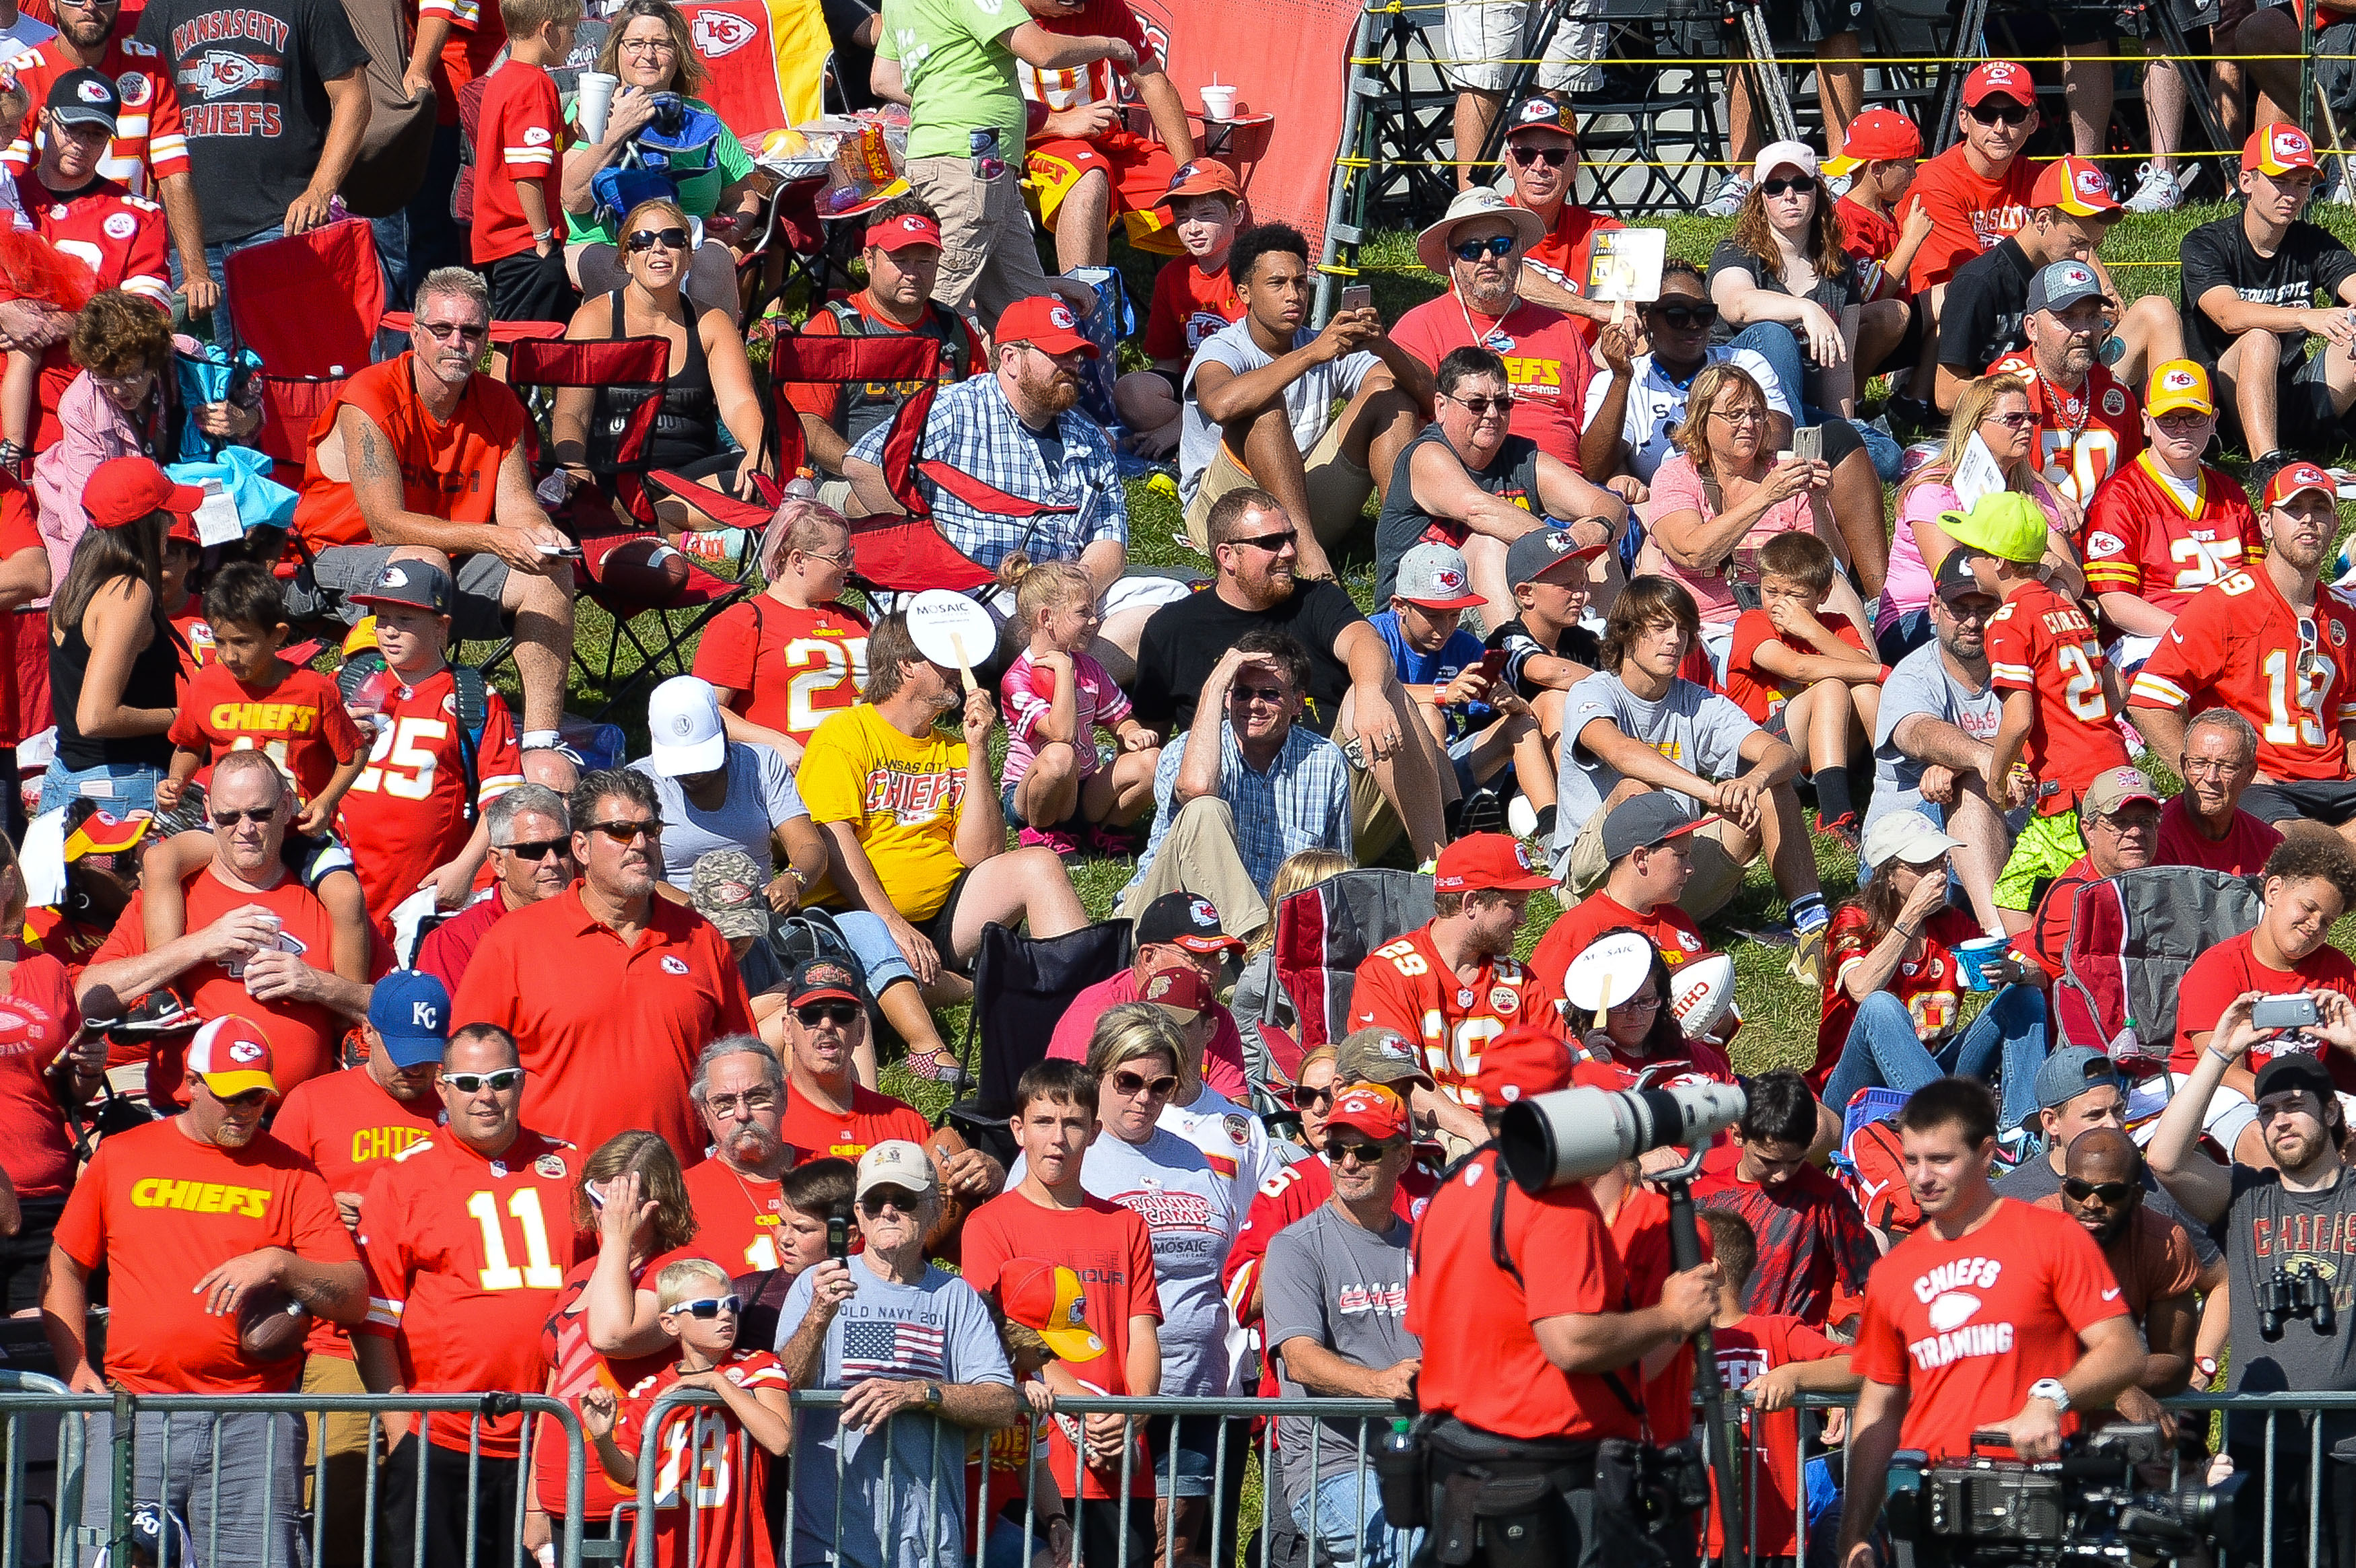 Fans watch from a hilltop as the Kansas City Chiefs' NFL football training camp Saturday, Aug. 6, 2016, in St. Joseph, Mo. (Dougal Brownlie/The St. Joseph News-Press via AP)